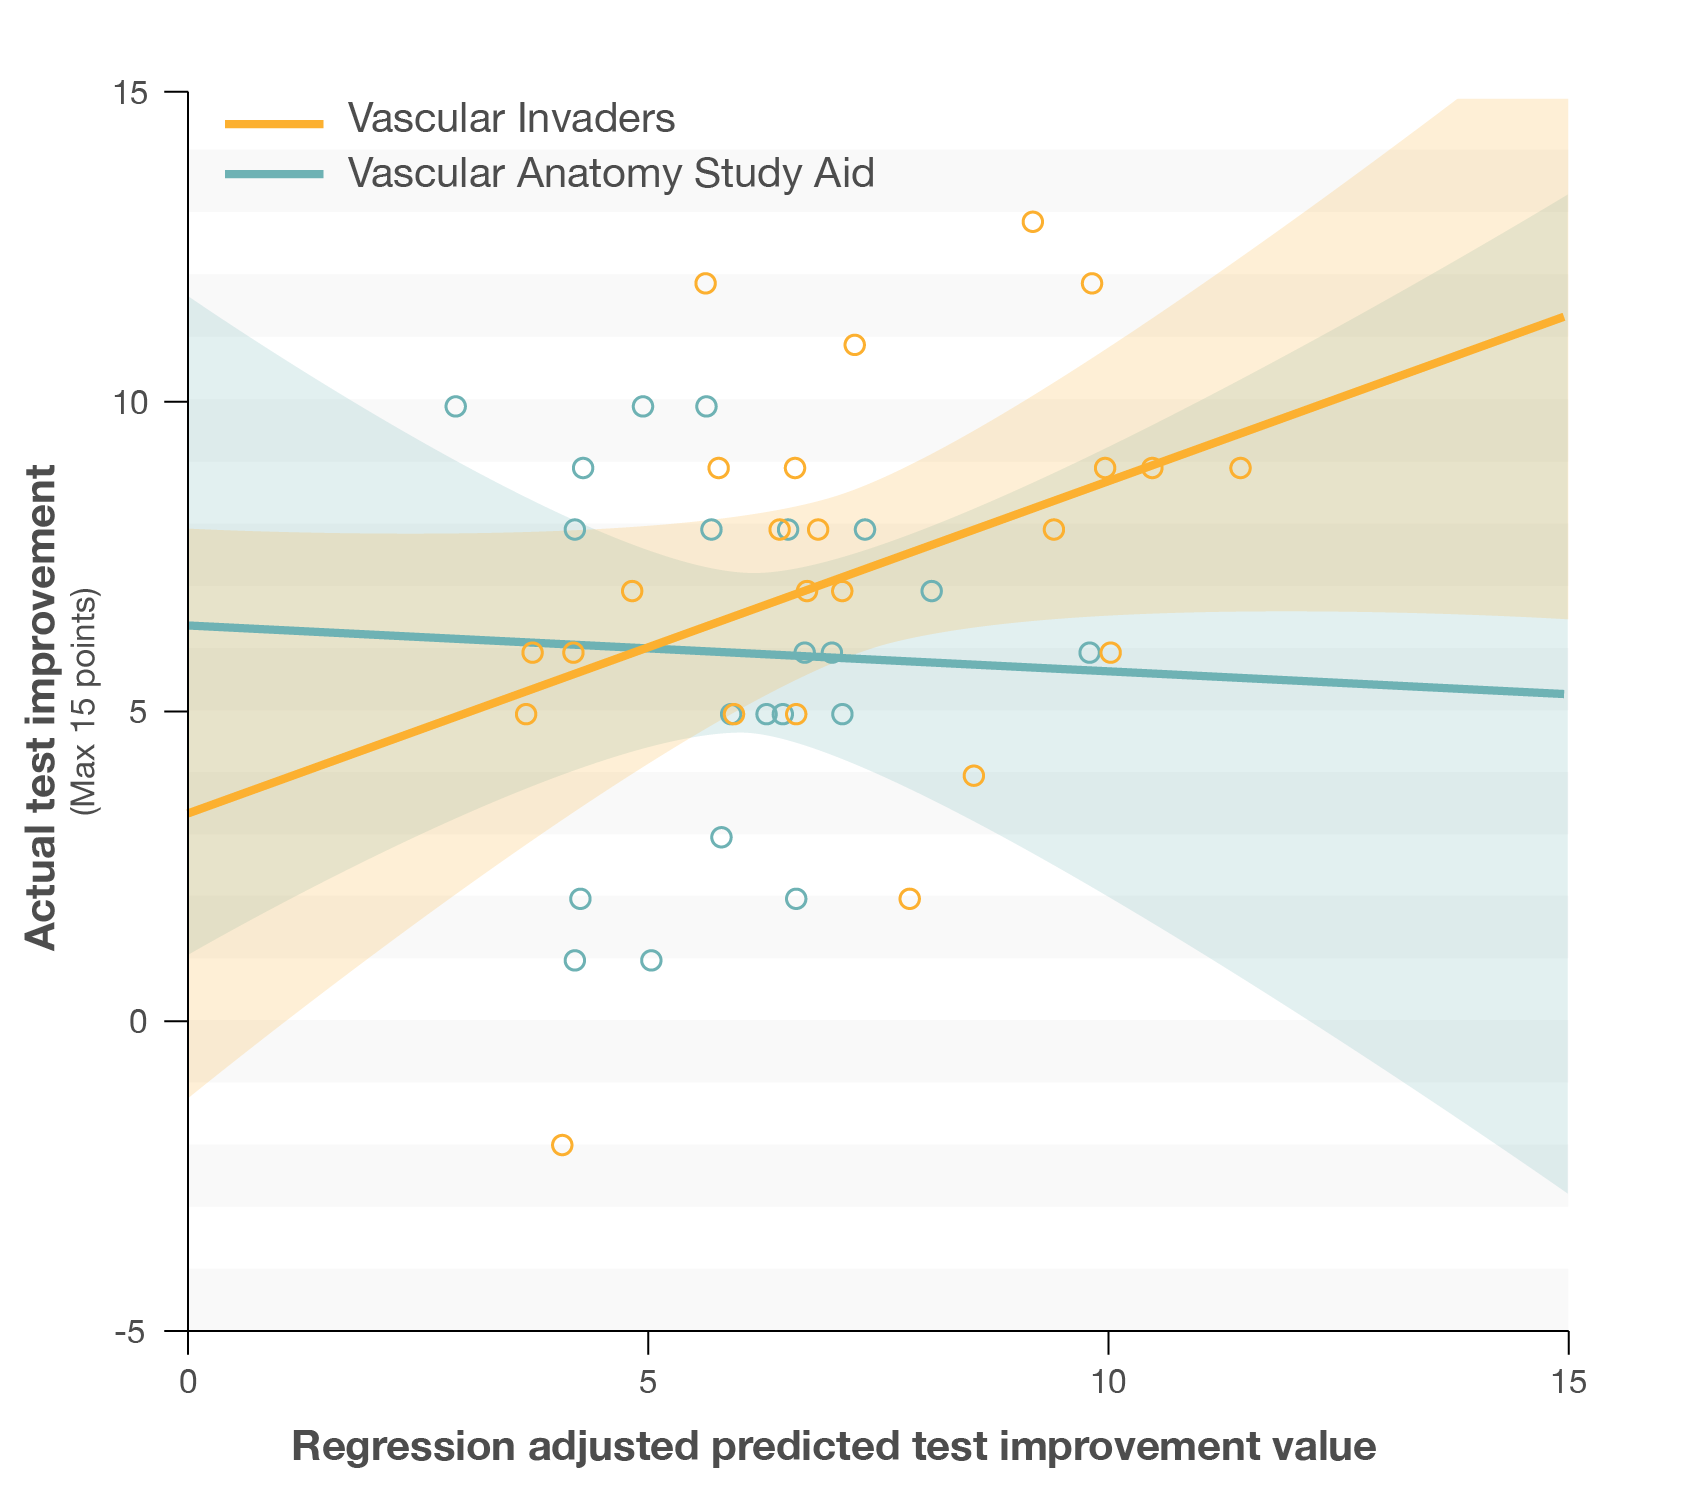 Scatterplot with regression line showing Actual test improvement scores over regression predicted test improvement values for students who played Vascular Invaders and those that used the Vascular Anatomy Study Aid